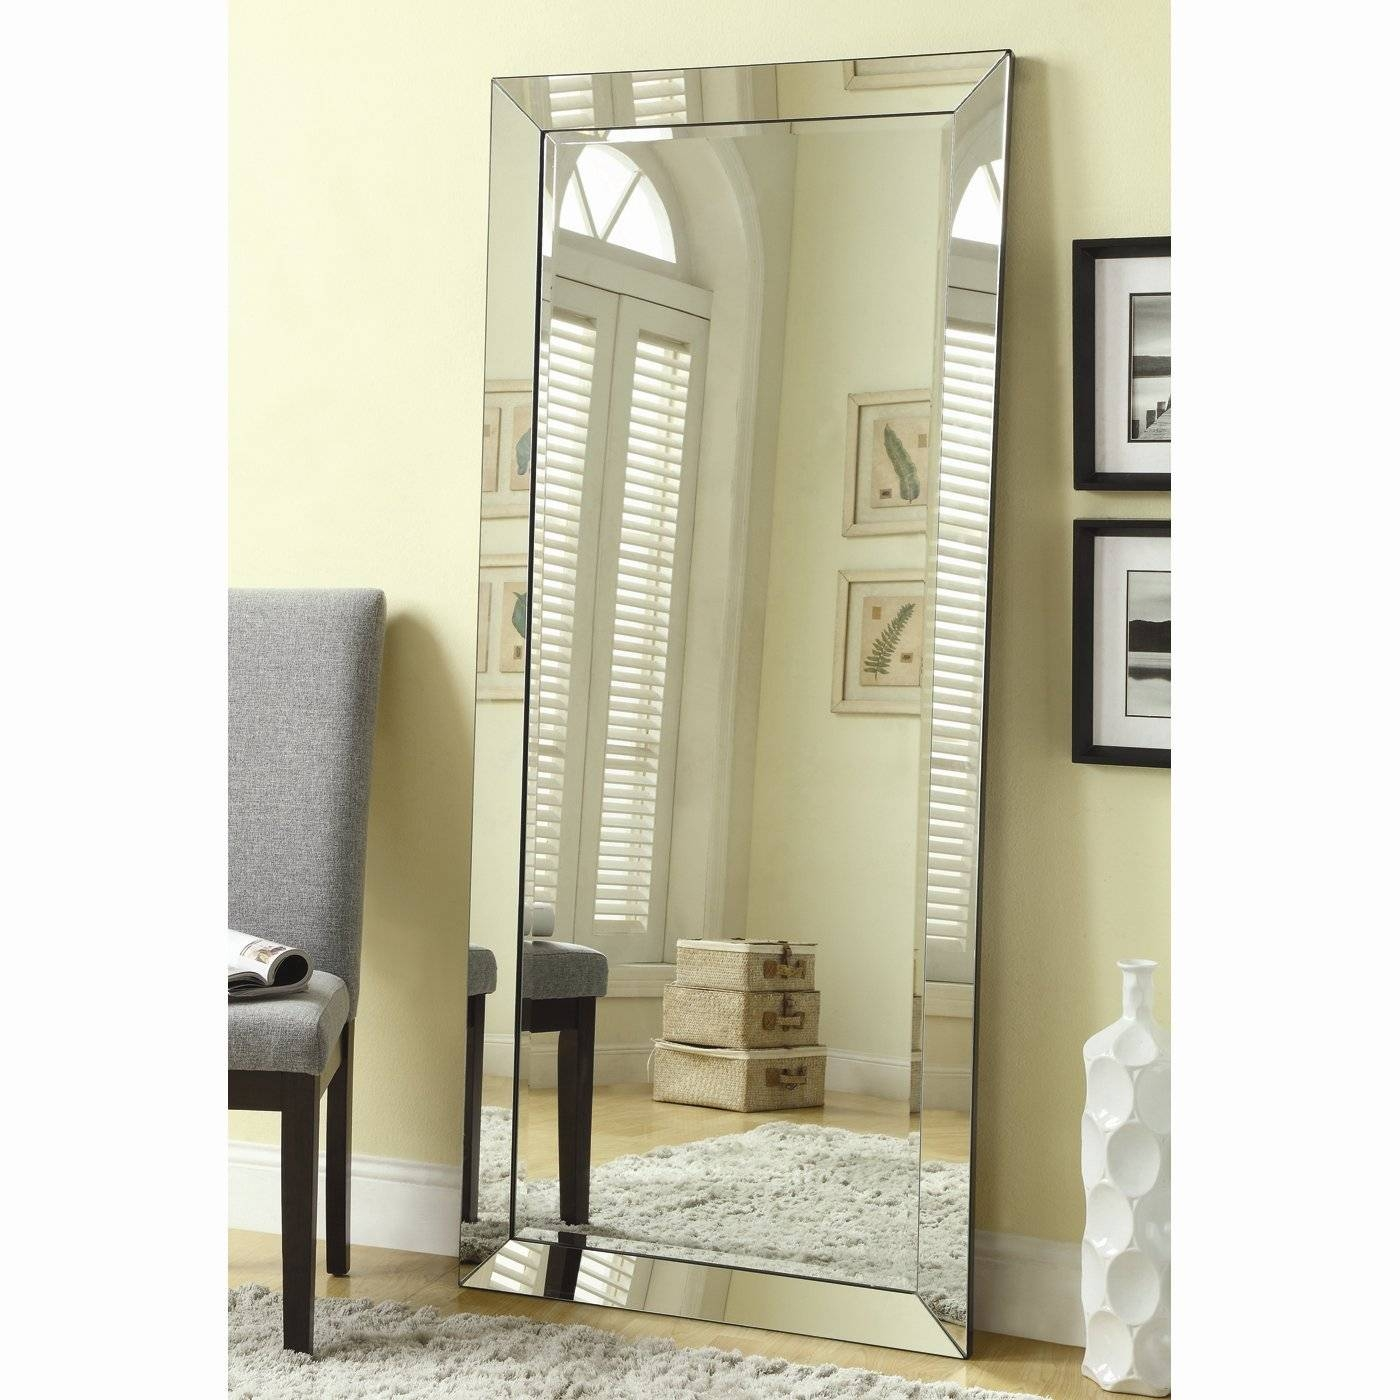 Full Length Floor Standing Mirror 91 Trendy Interior Or Full intended for Large Floor Standing Mirrors (Image 14 of 25)